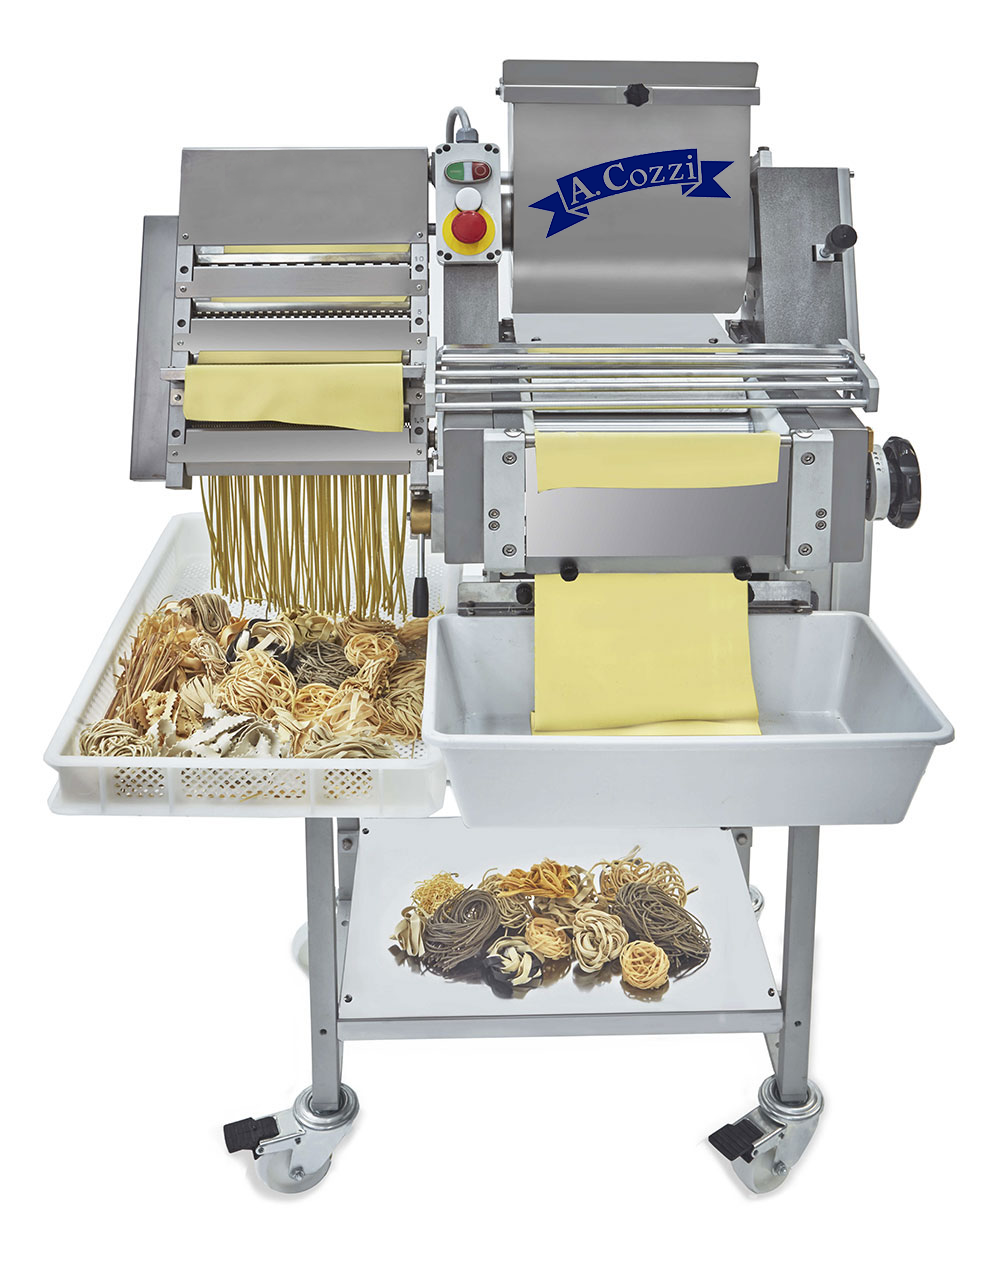 Semi-automatic cutter for fresh pasta